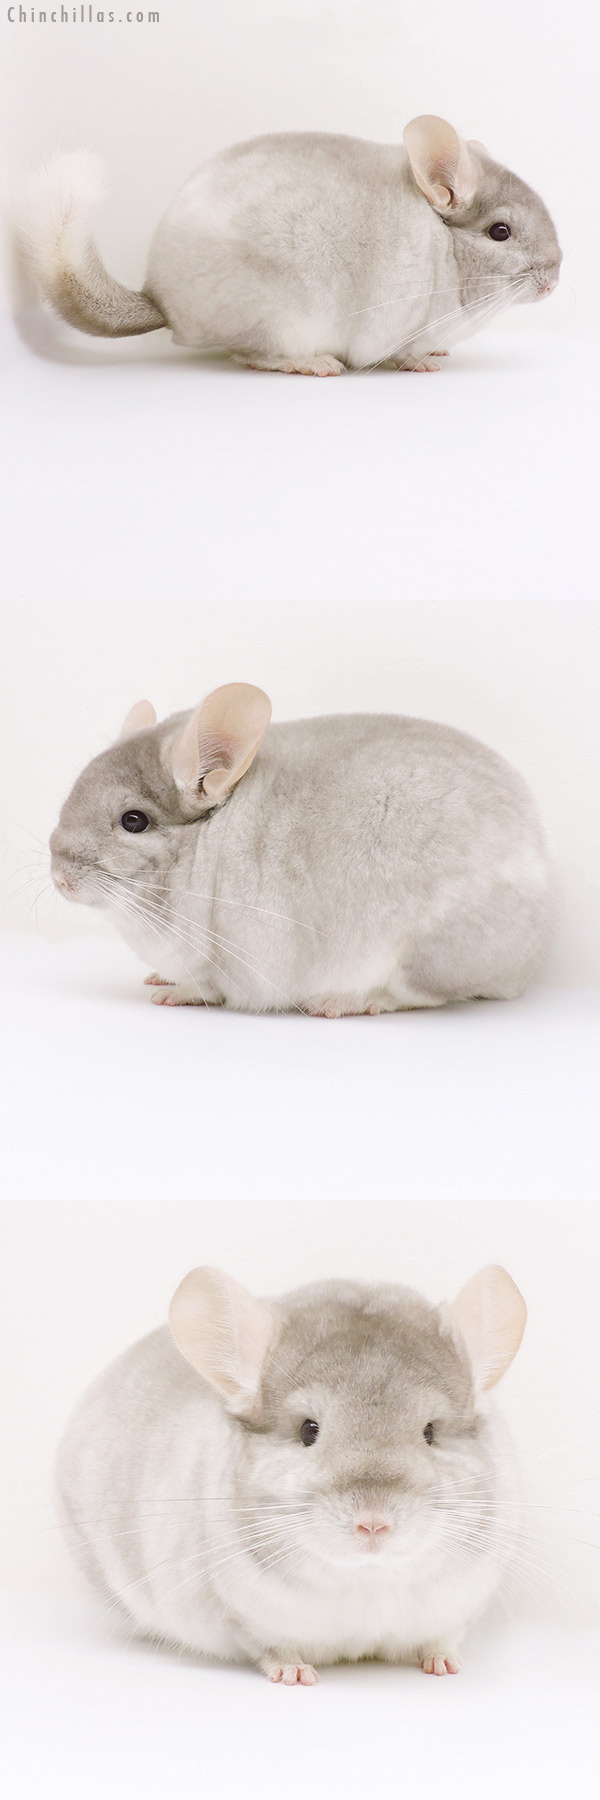 16256 Large Blocky Herd Improvement Quality Beige & White Mosaic Male Chinchilla